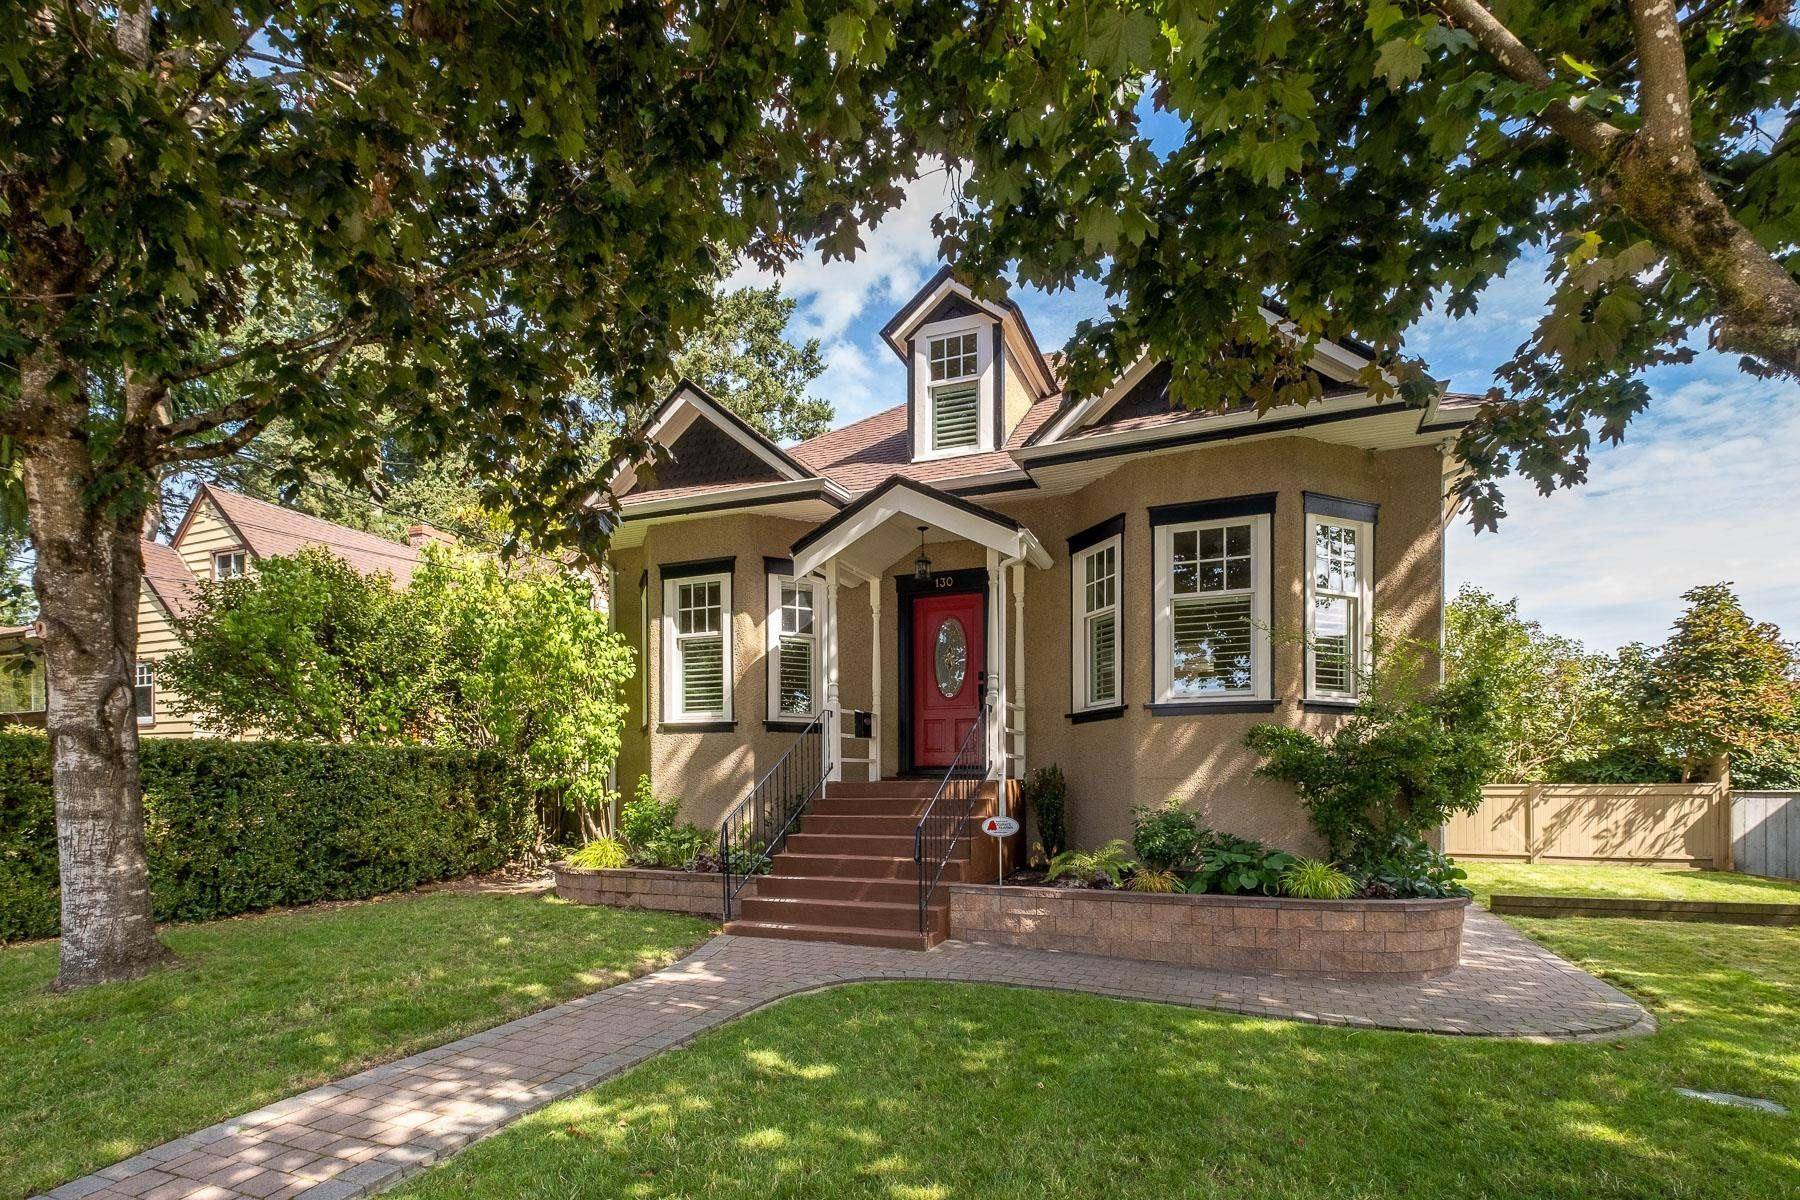 """Main Photo: 130 CARROLL Street in New Westminster: The Heights NW House for sale in """"The Heights"""" : MLS®# R2613864"""